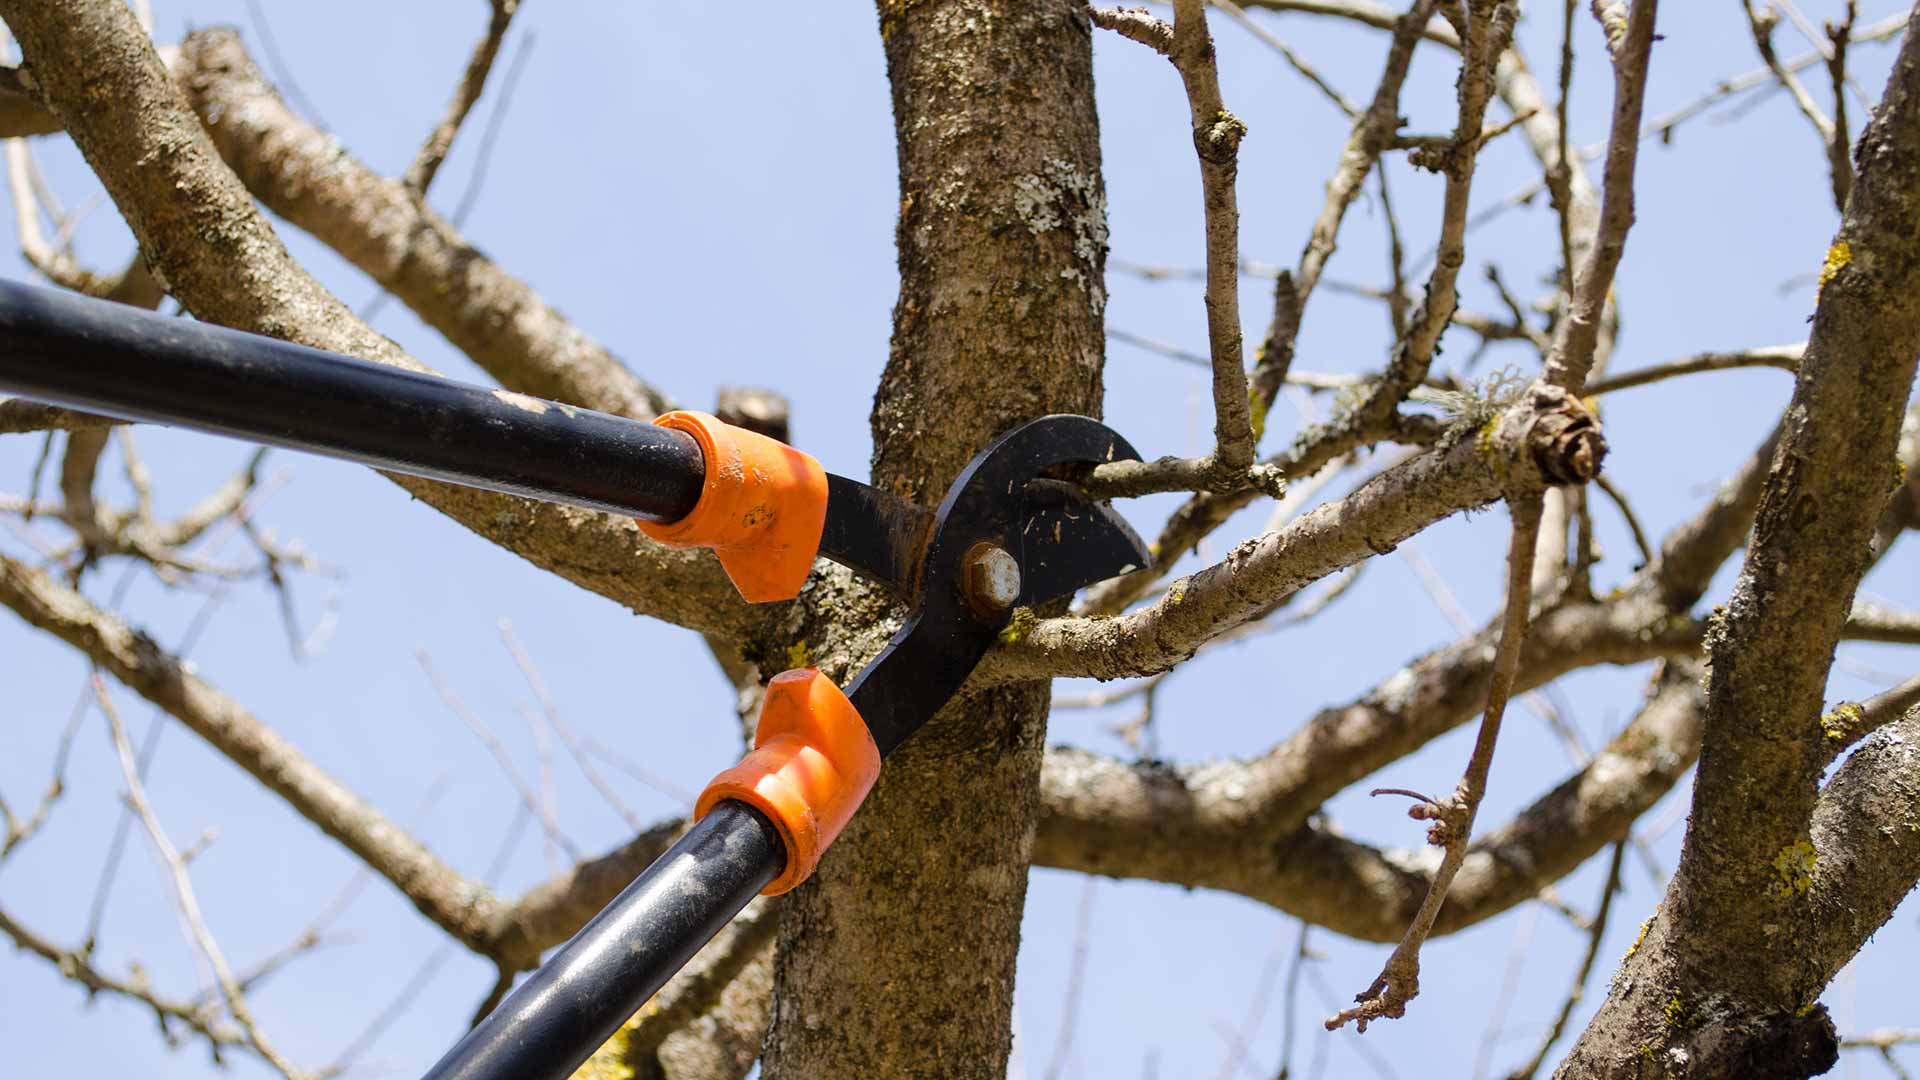 Tree limbs being pruned and trimmed on a Bristow, VA property.